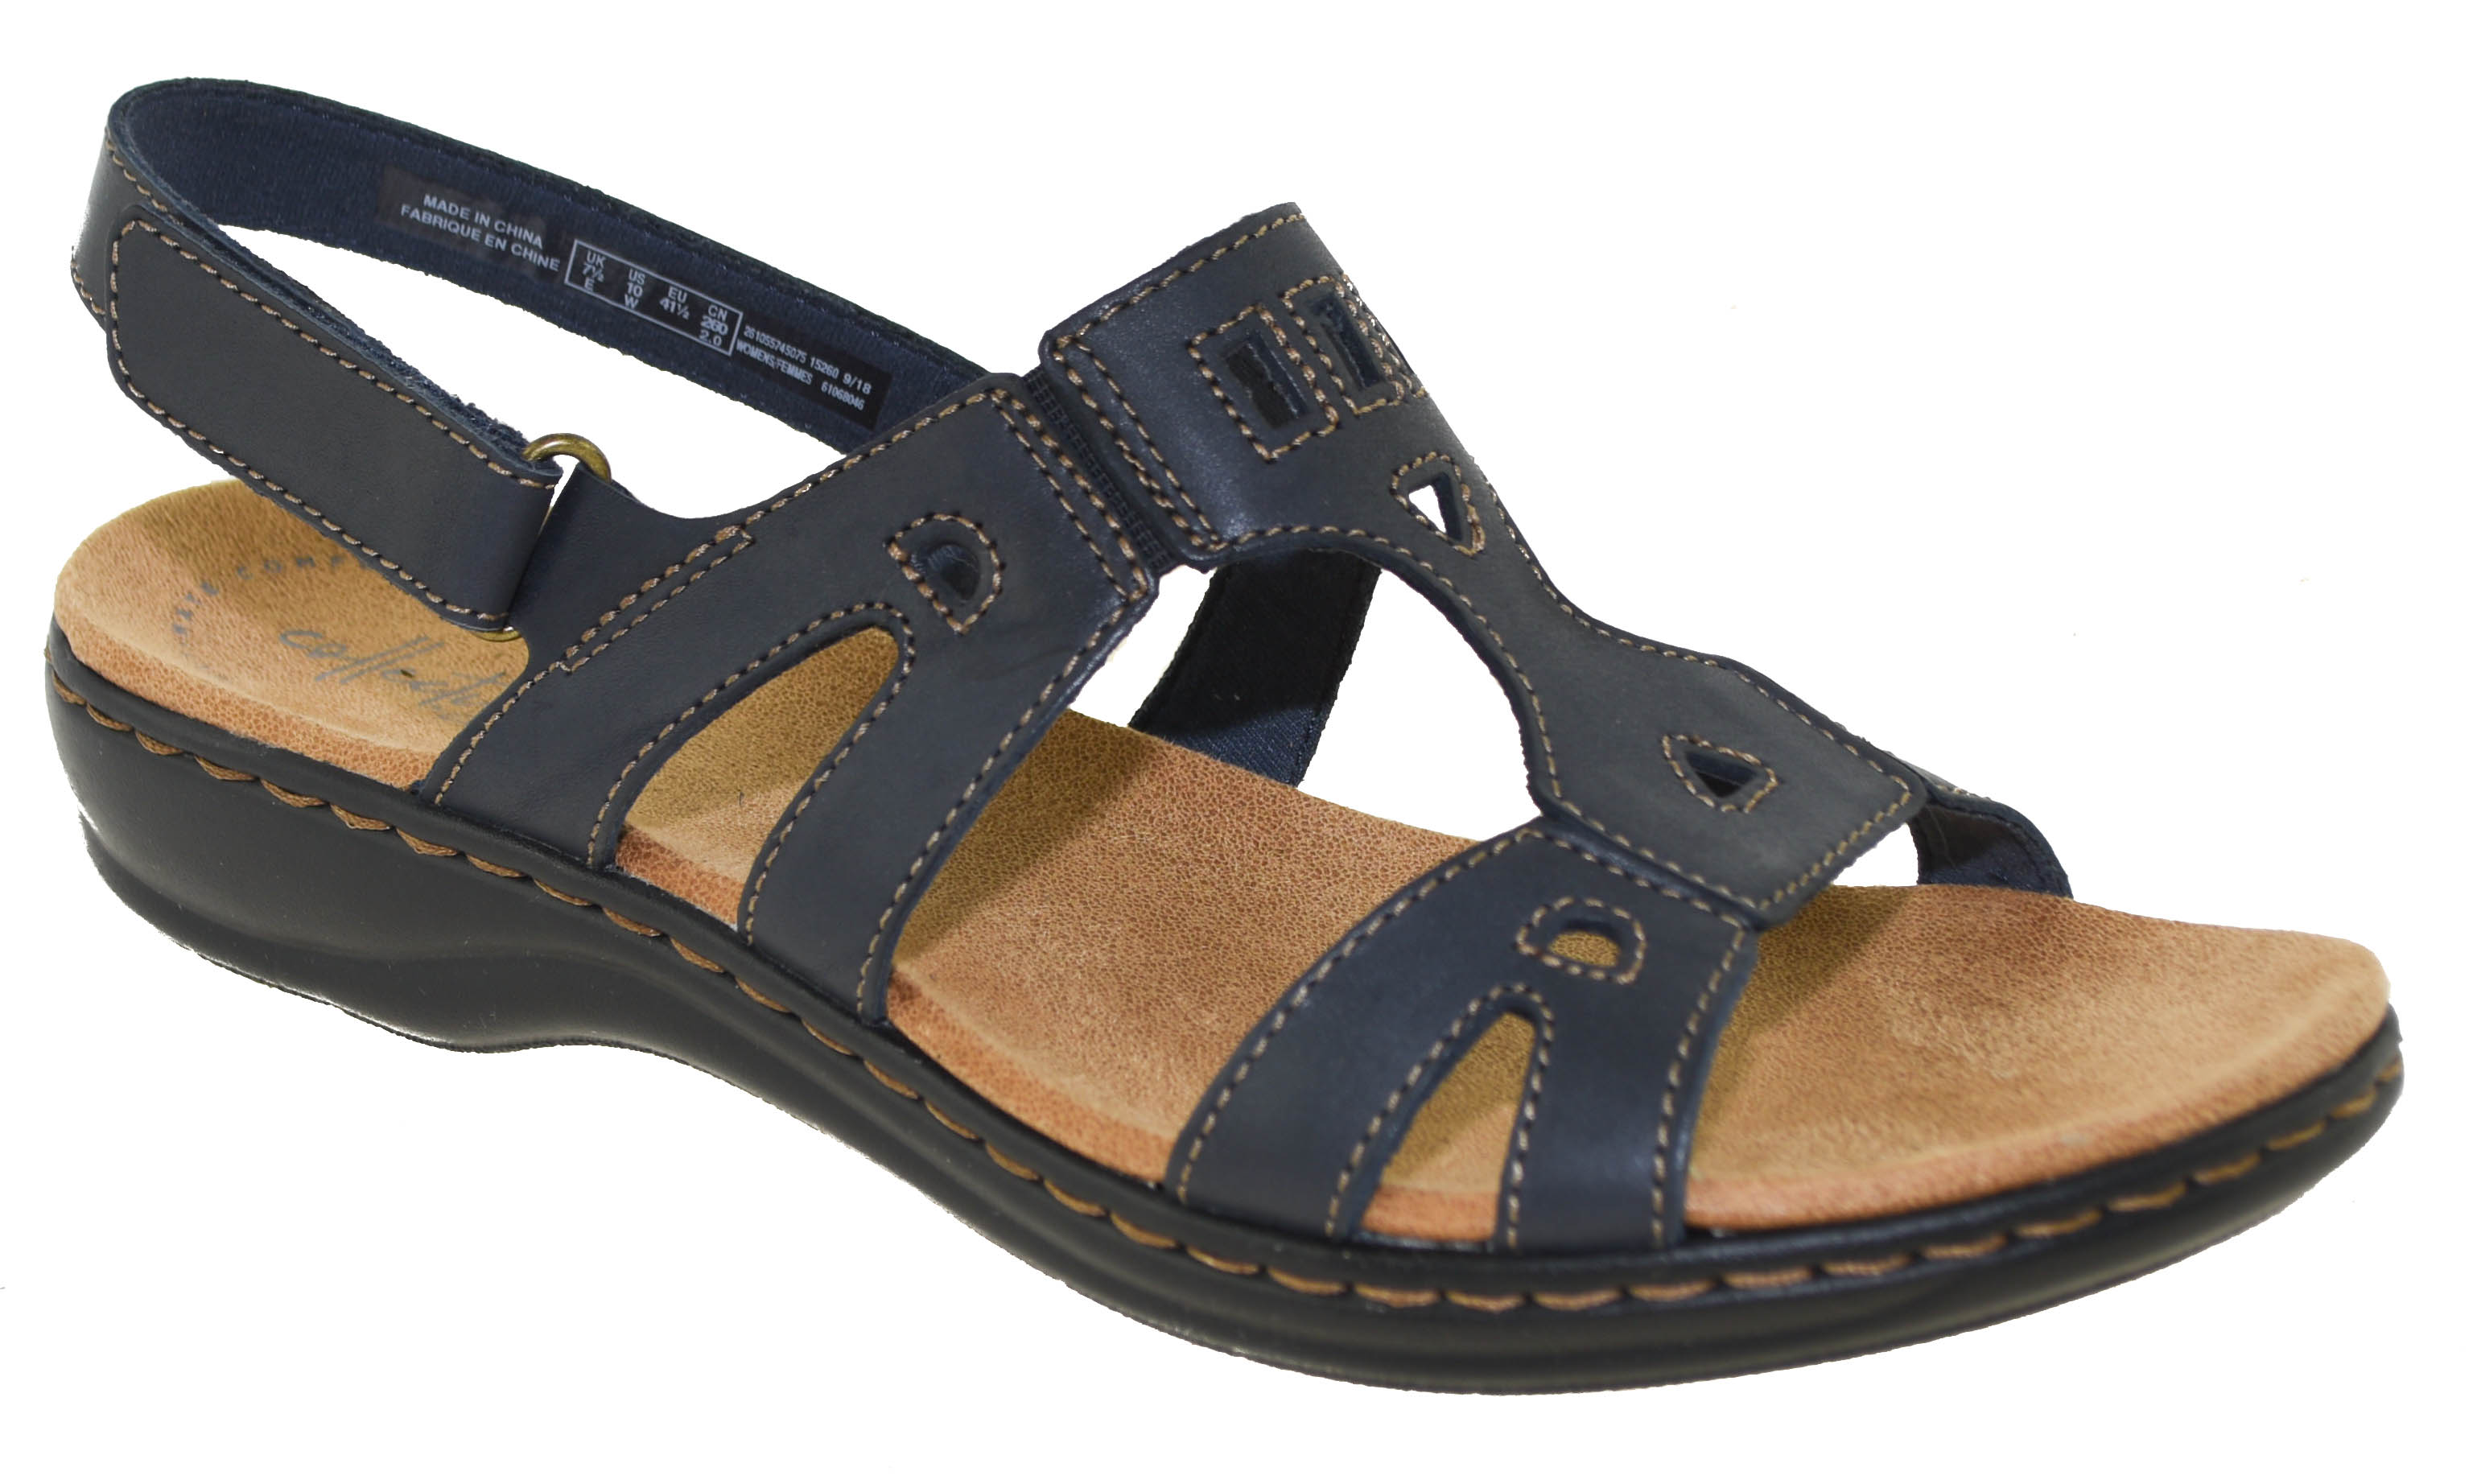 1f4cb3994cf8 Click Thumbnails to Enlarge. Cutouts and stitching details add appeal to  the Leisa Annual classic women s sandal from the Clarks ...